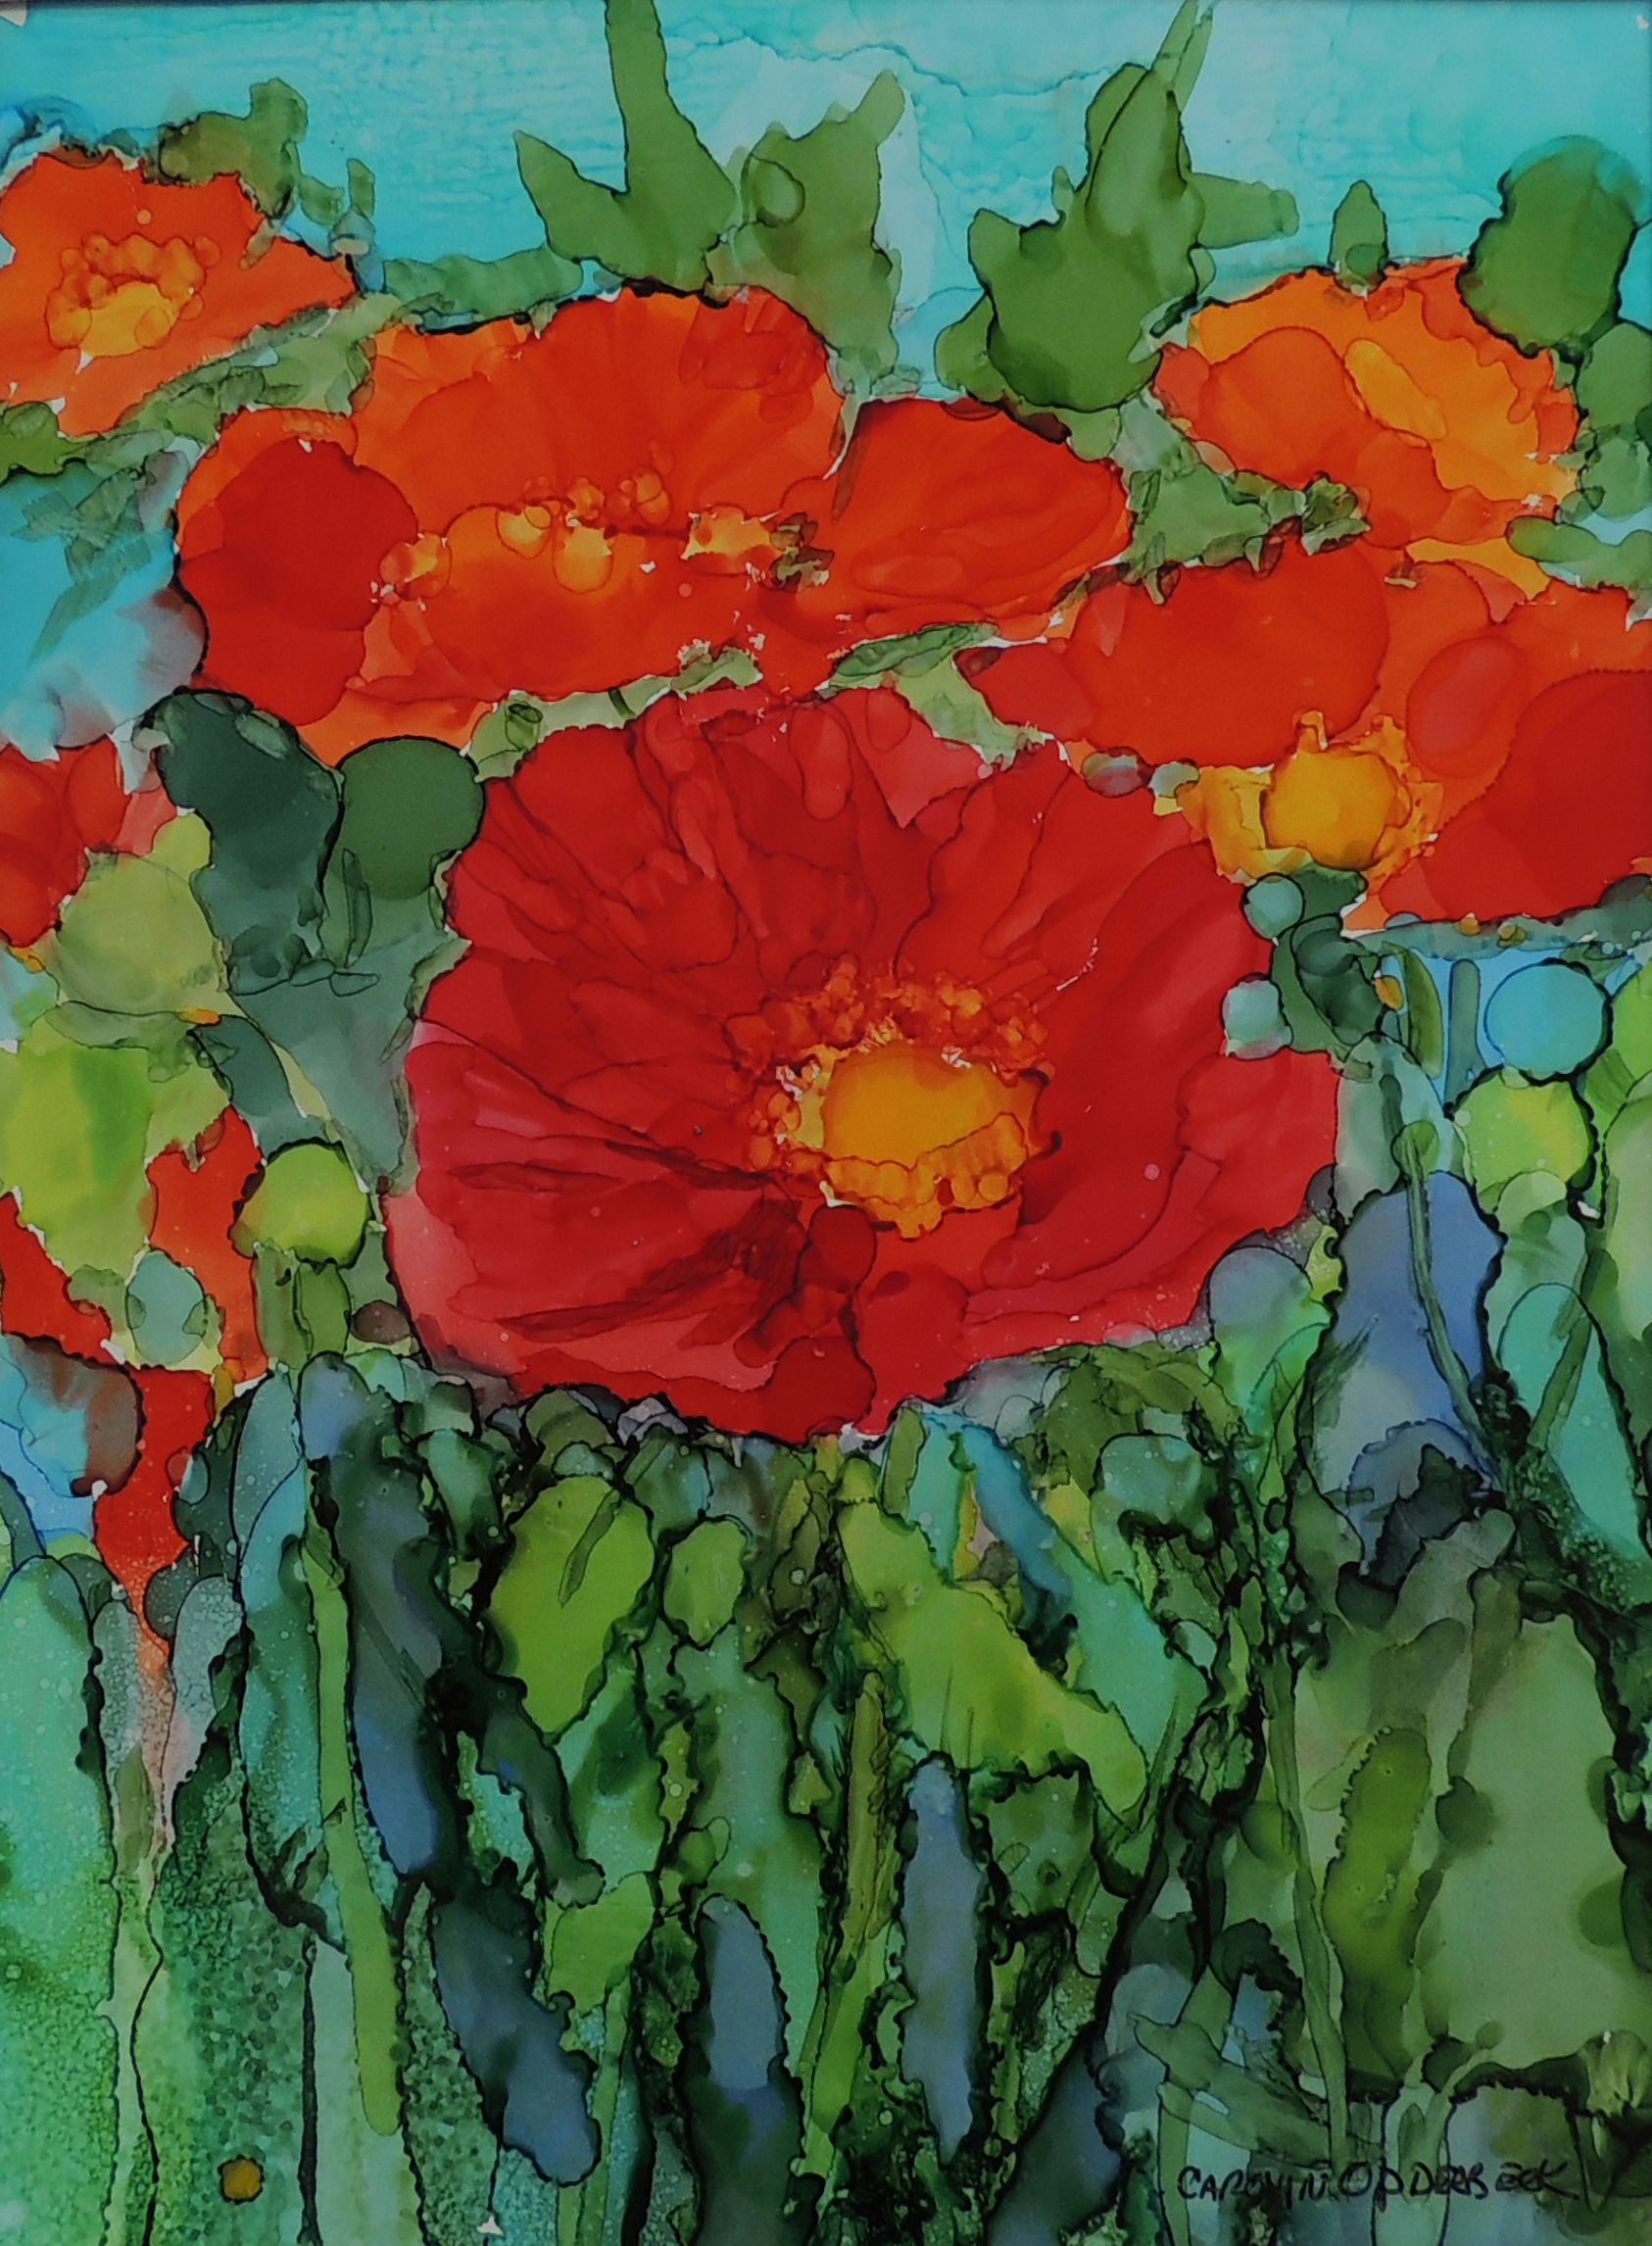 40 Ink Painting Ideas For Inspiration: 14 X 18 Alcohol Ink On Yupo Painting By Carolyn Opderbeck